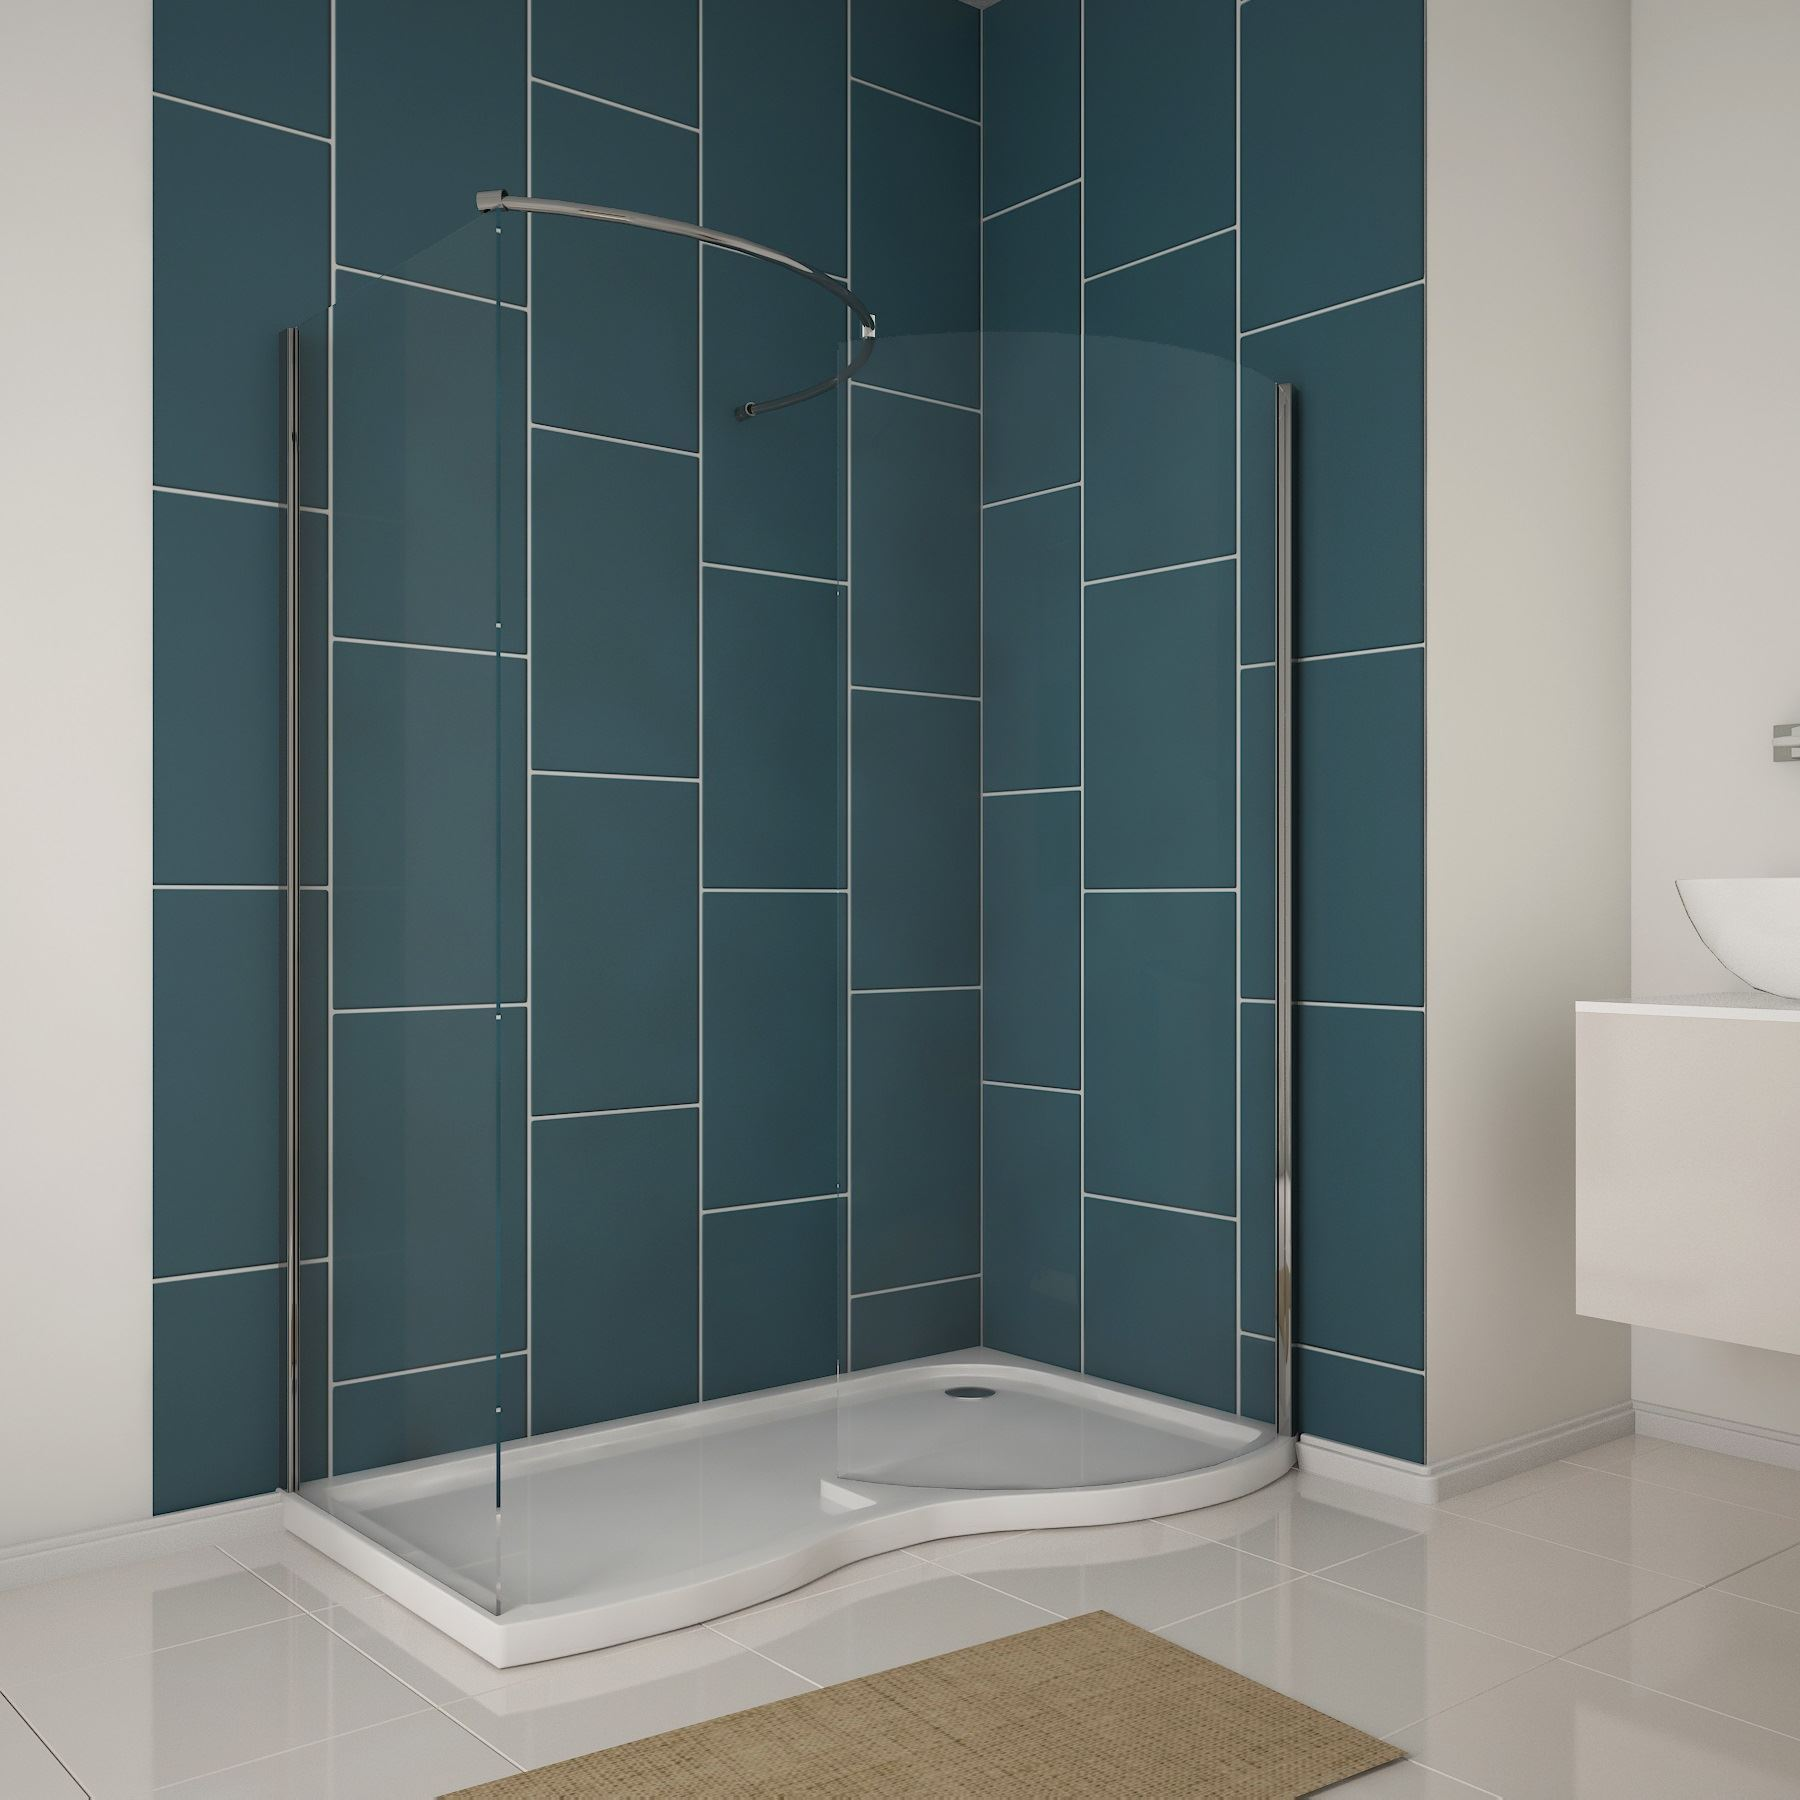 6mm curved walk in shower enclosure easy clean glass screen 1850 side panel tray ebay - Walk in glass shower enclosures ...